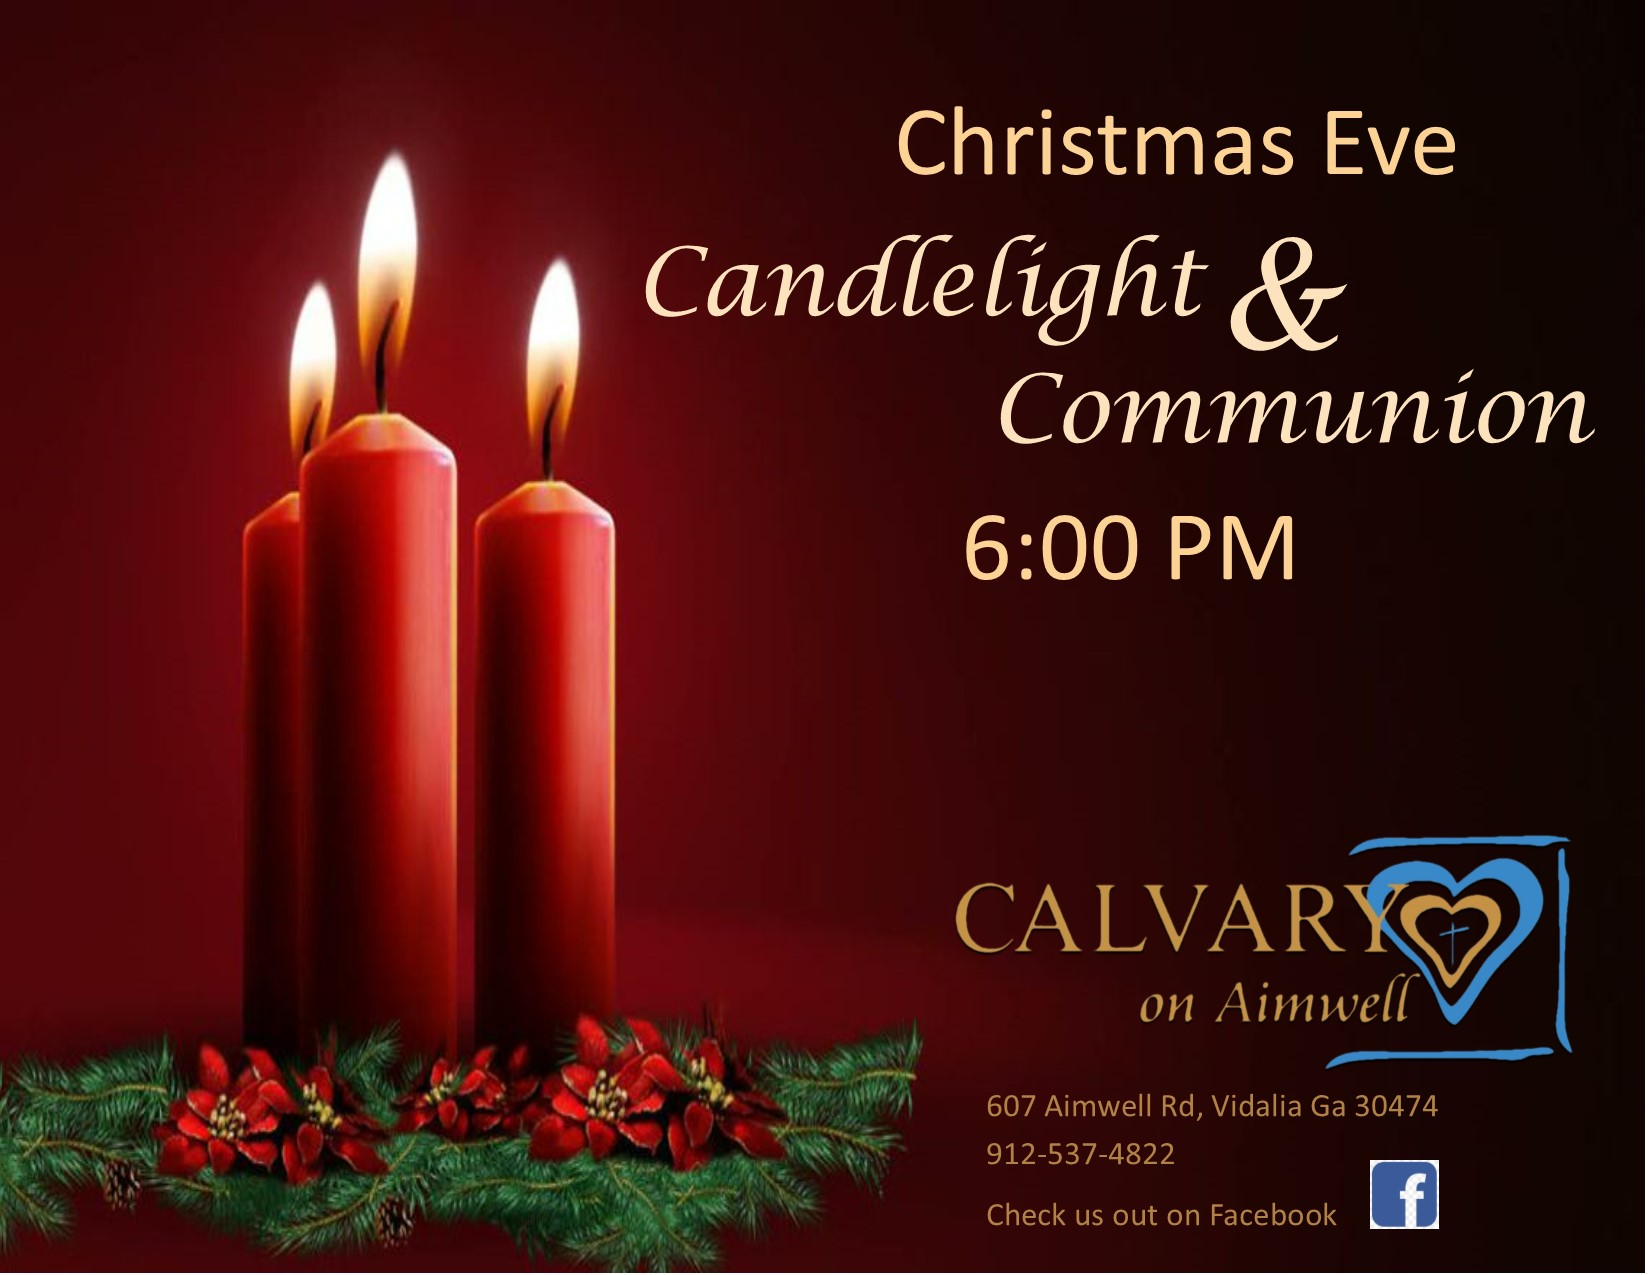 2019-12-24 Candlelight & Communion - Calvary on Aimwell